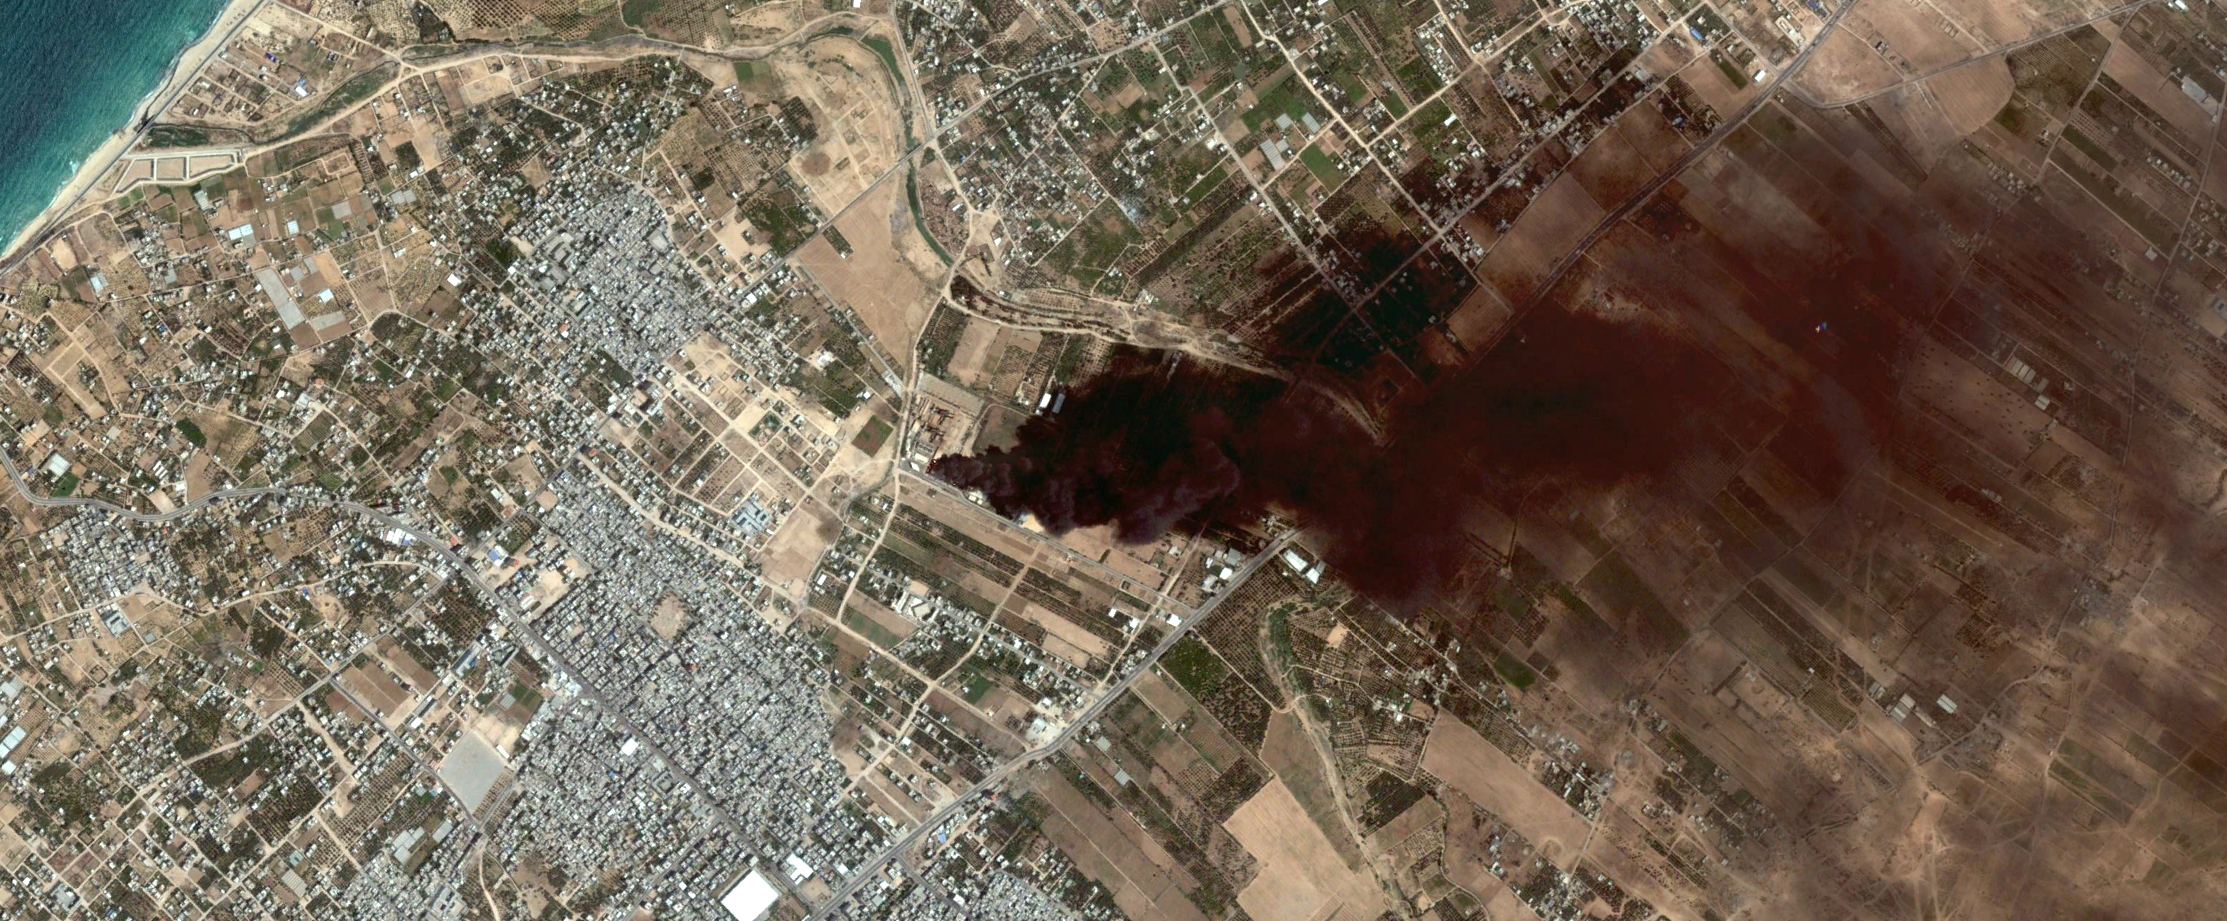 2014_0729 Gaza - Google Earth